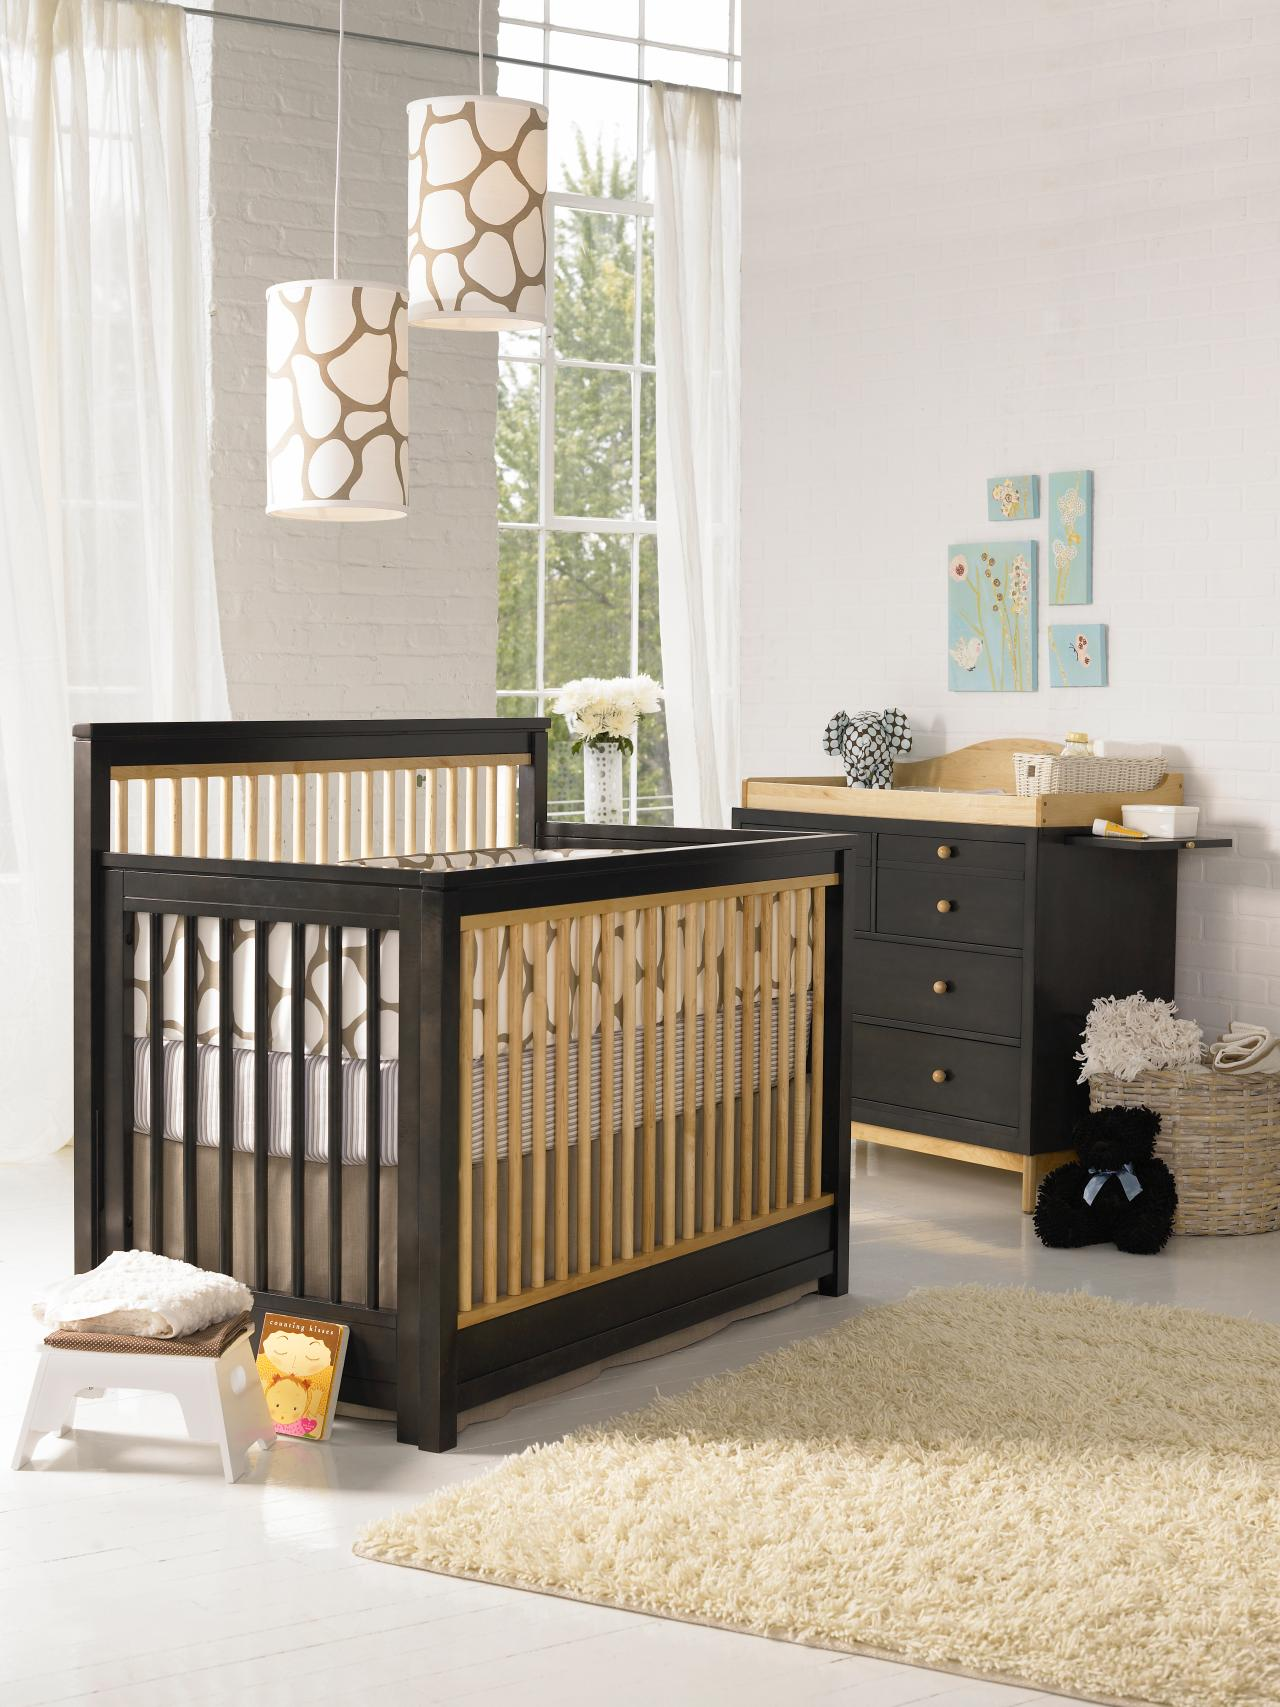 15 cool cribs for every style kids room ideas for for Baby cradle decoration ideas